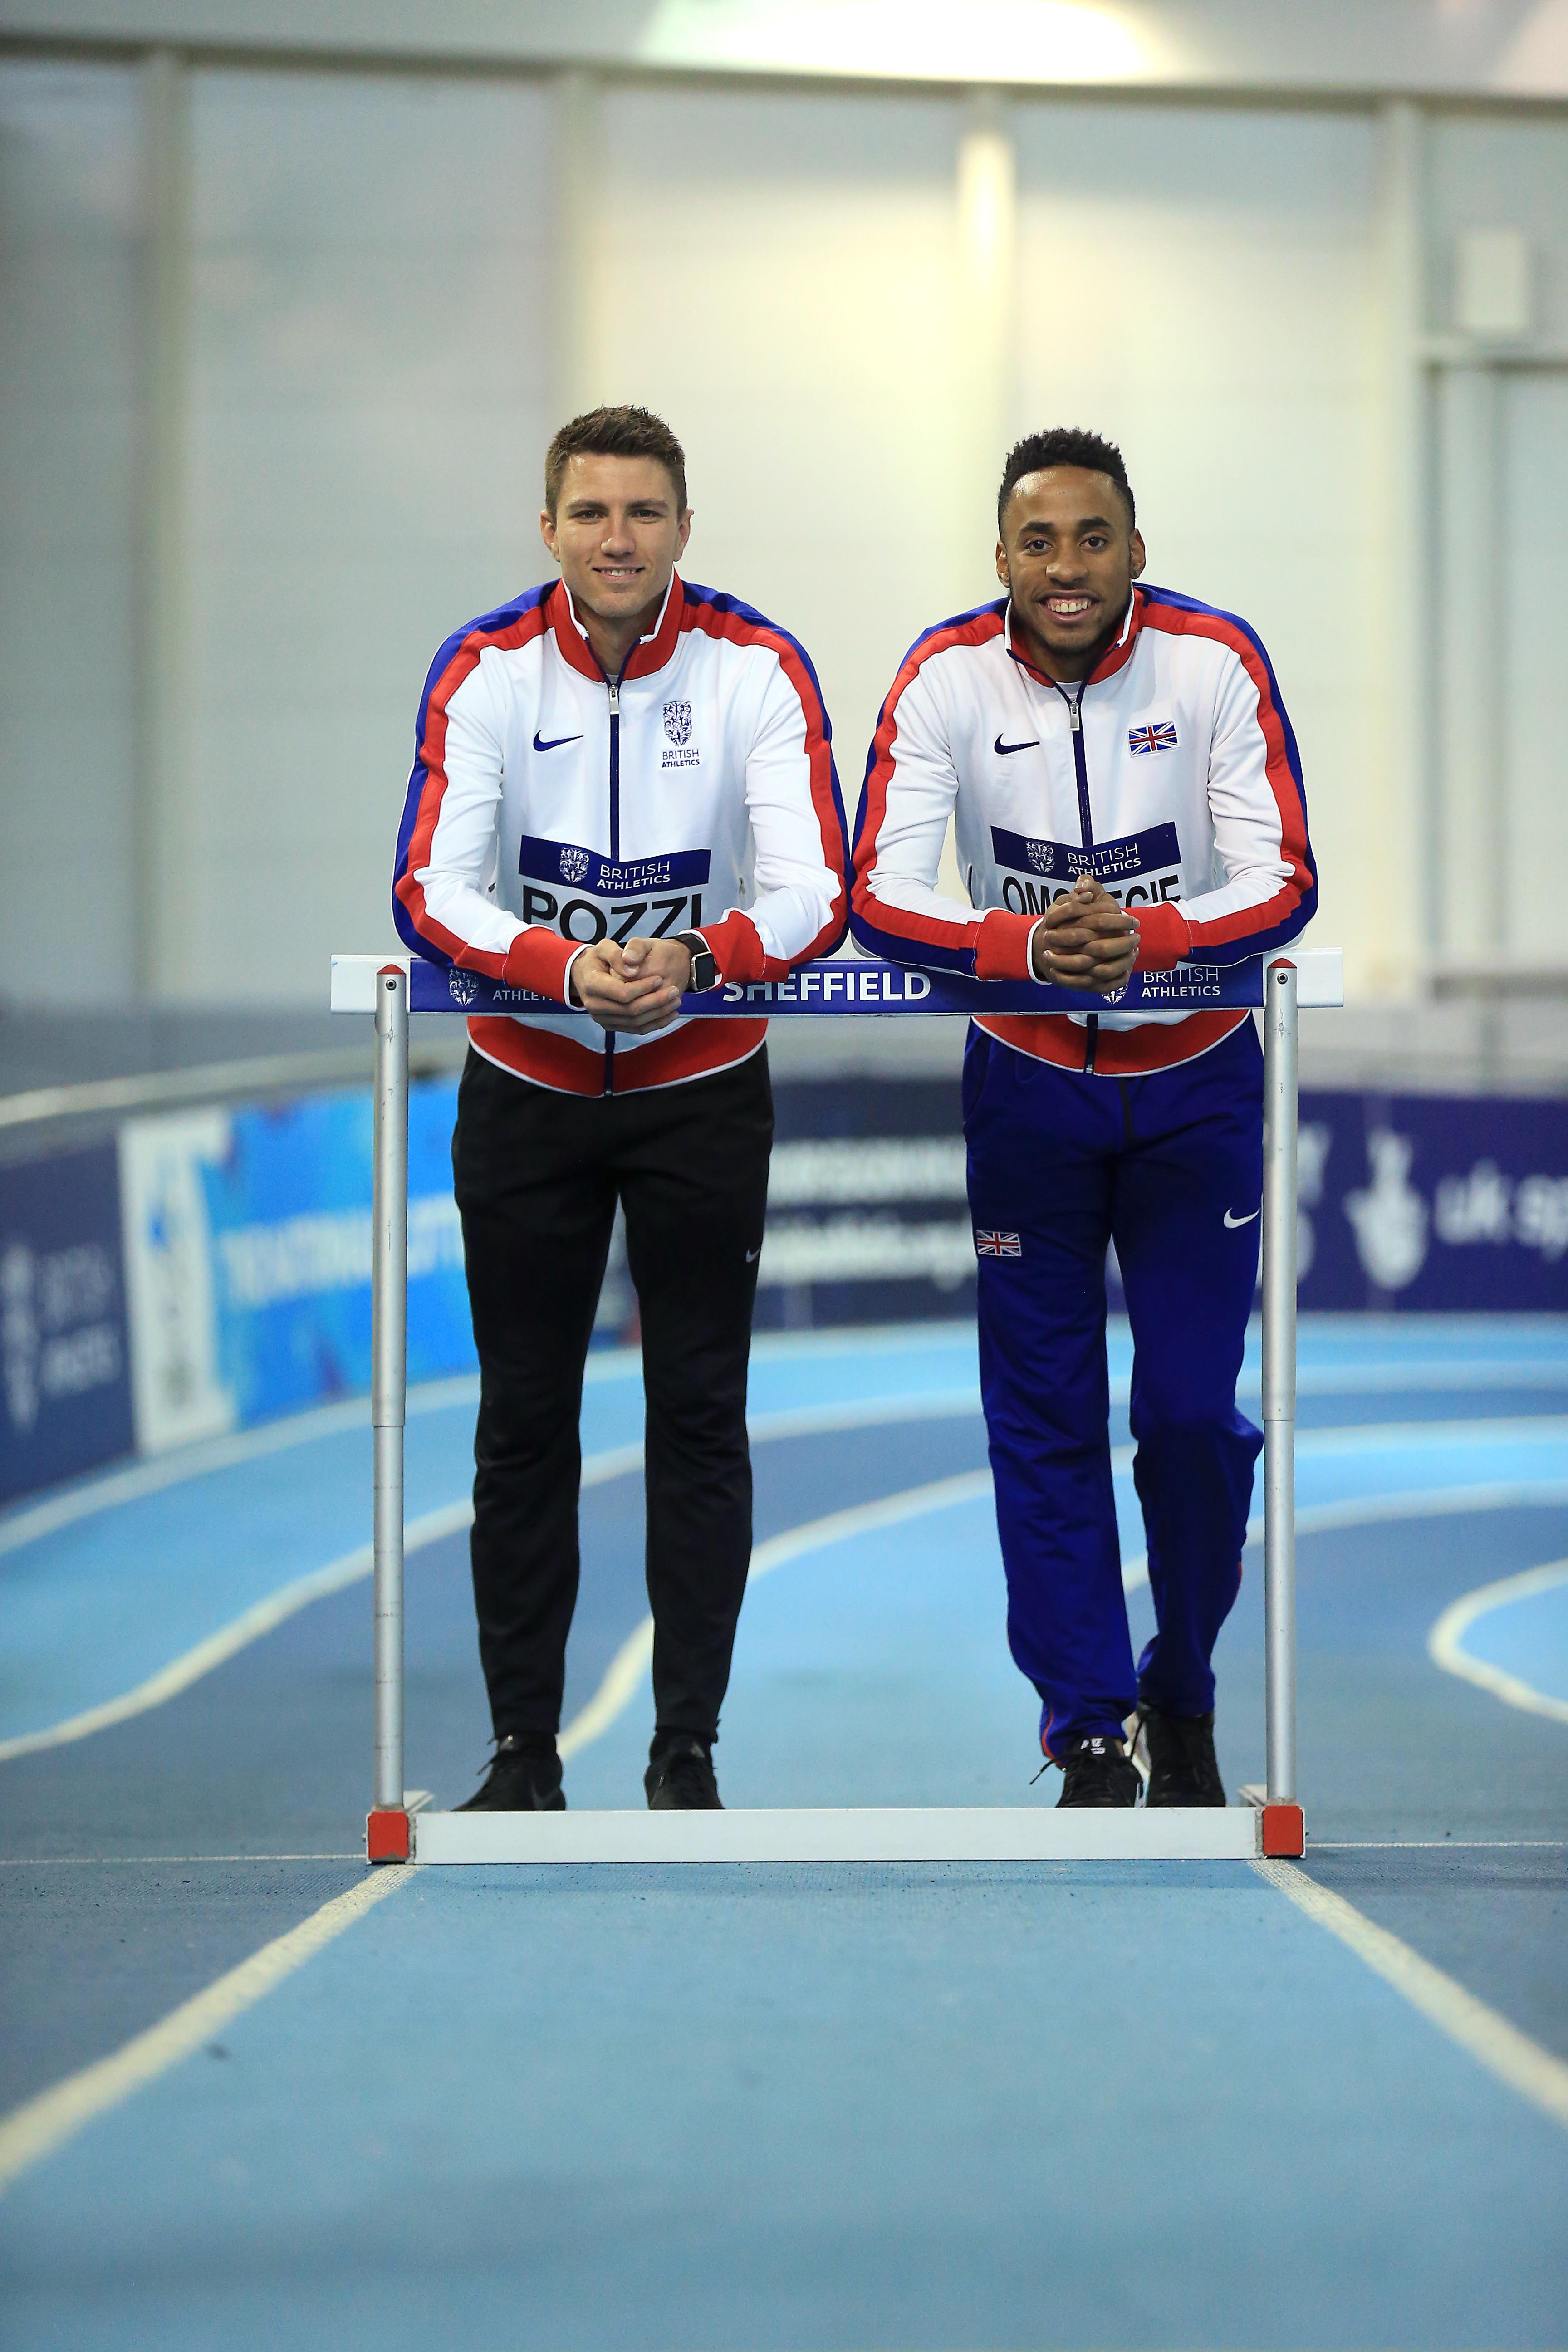 SHEFFIELD, ENGLAND - FEBRUARY 10: Andrew Pozzi and David Omoregie of Great Britain during a photo call ahead of the British Athletics Indoor Team Trials 2017 at the English Institute of Sport on February 10, 2017 in Sheffield, England. (Photo by Stephen Pond - British Athletics/British Athletics via Getty Images)